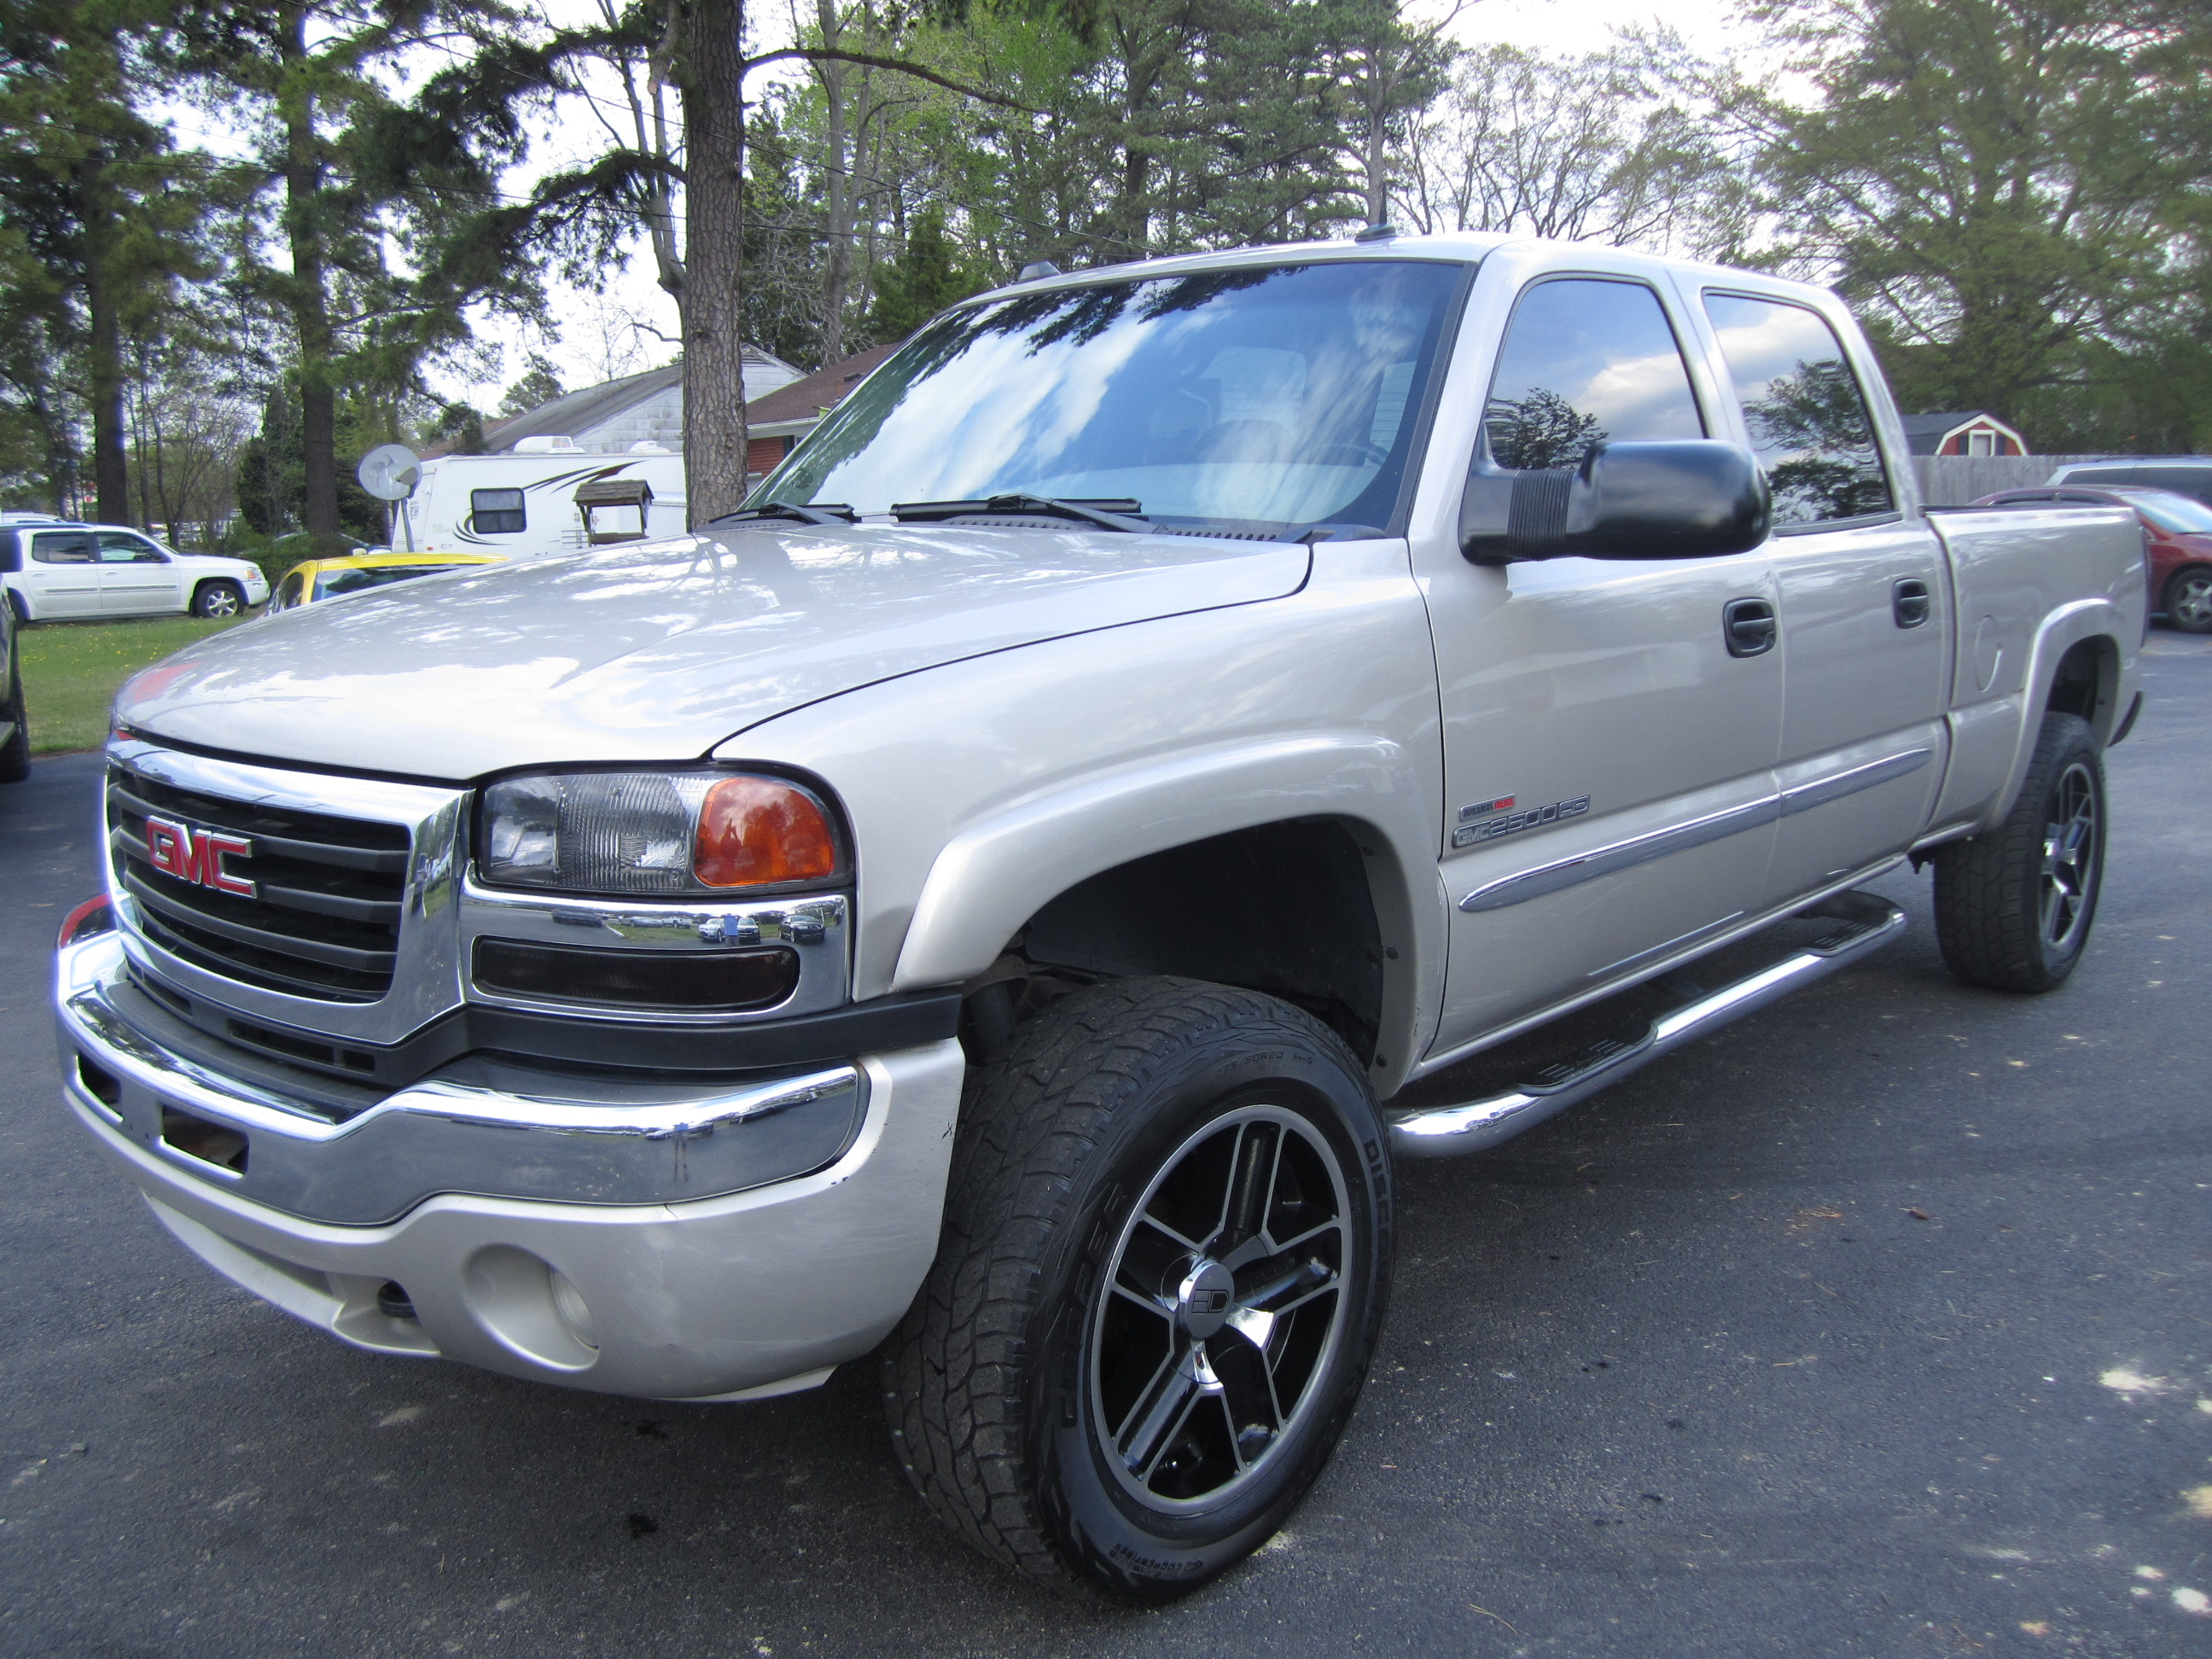 2004 GMC Sierra 2500hd #5